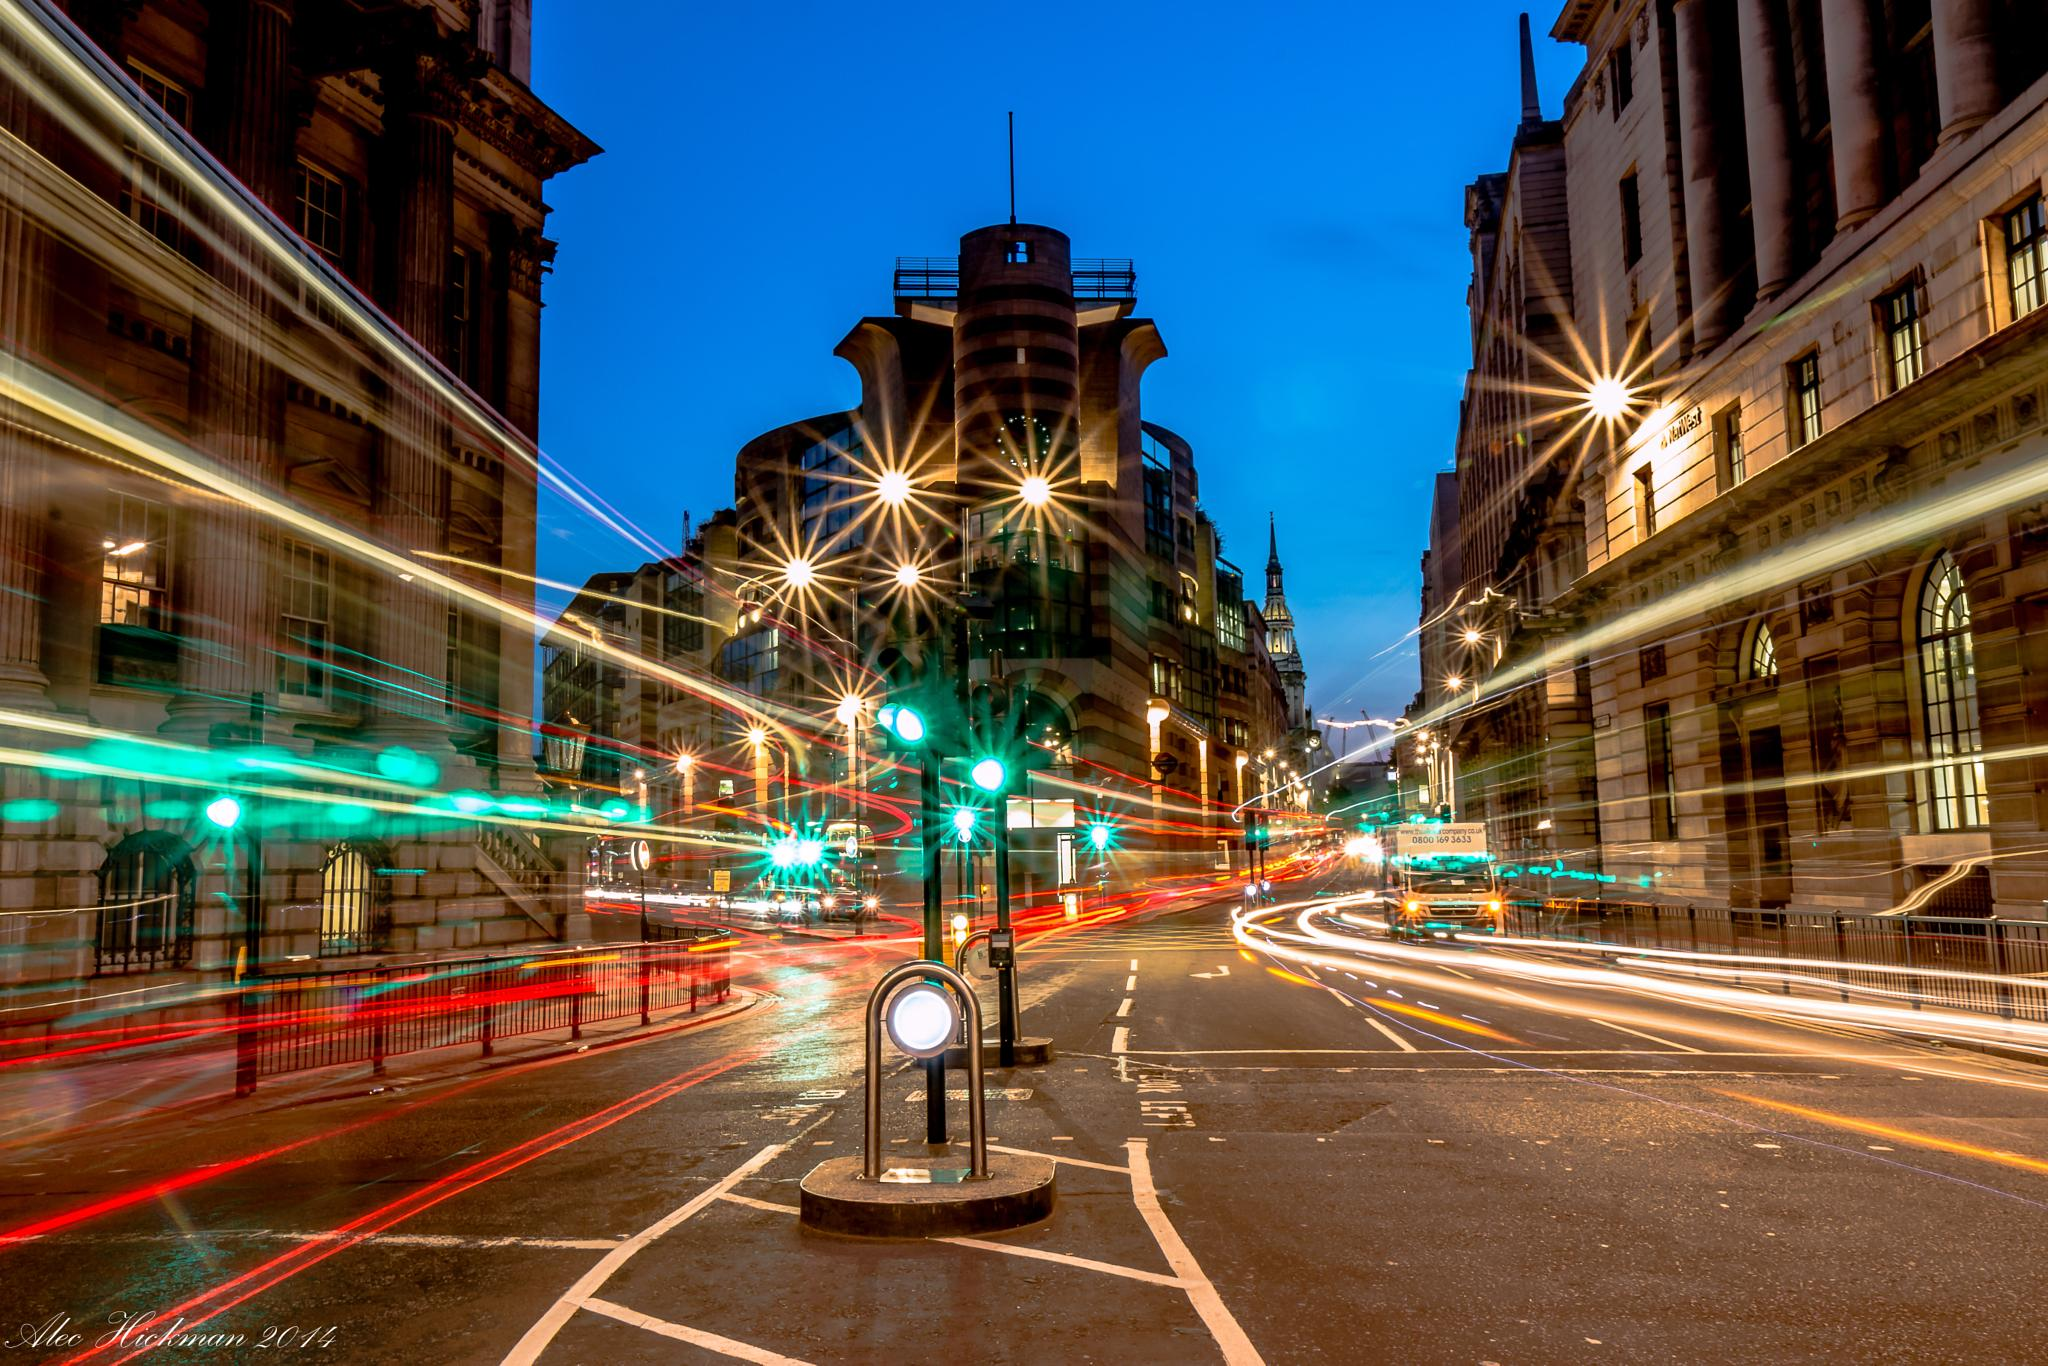 Traffic in the city of London by Alec Hickman